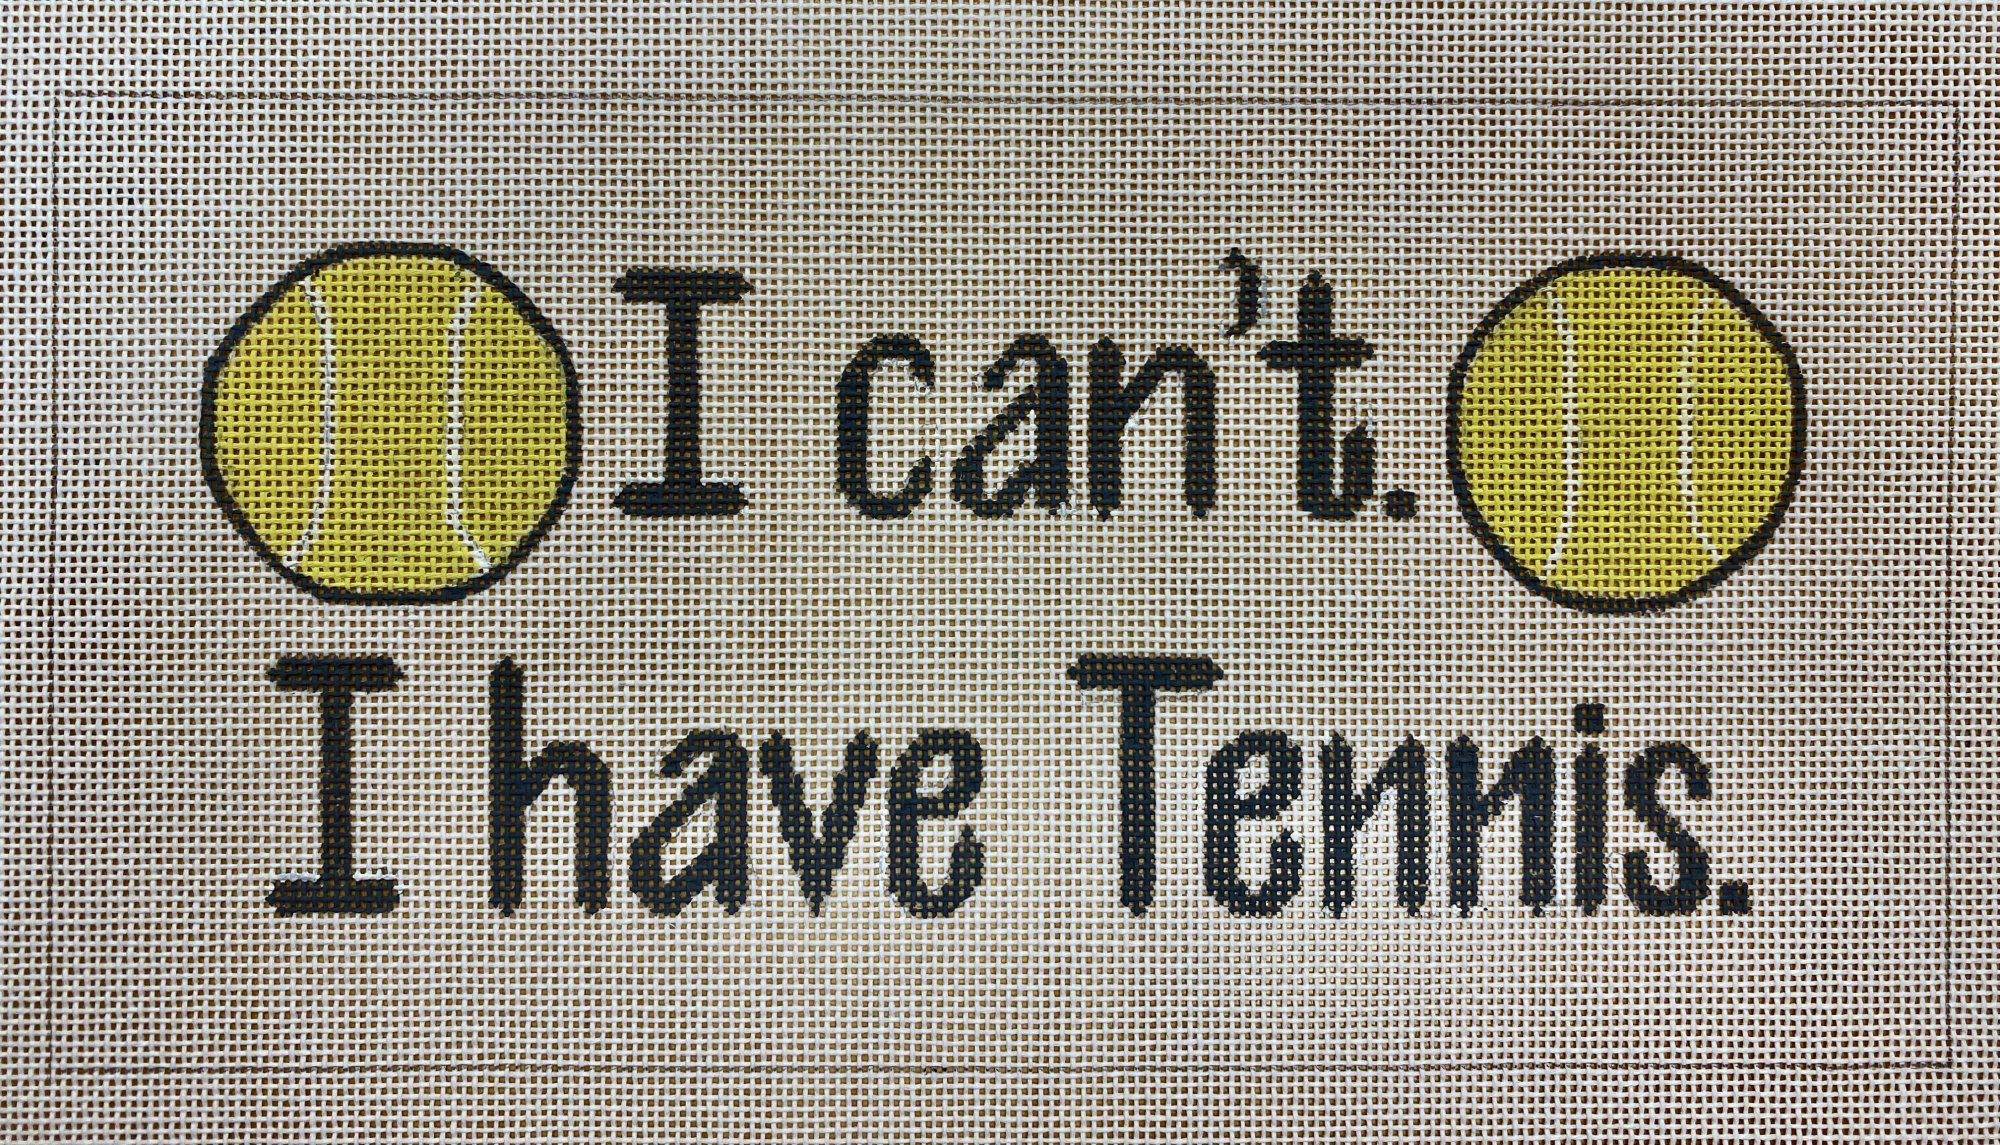 I can't. I have tennis.